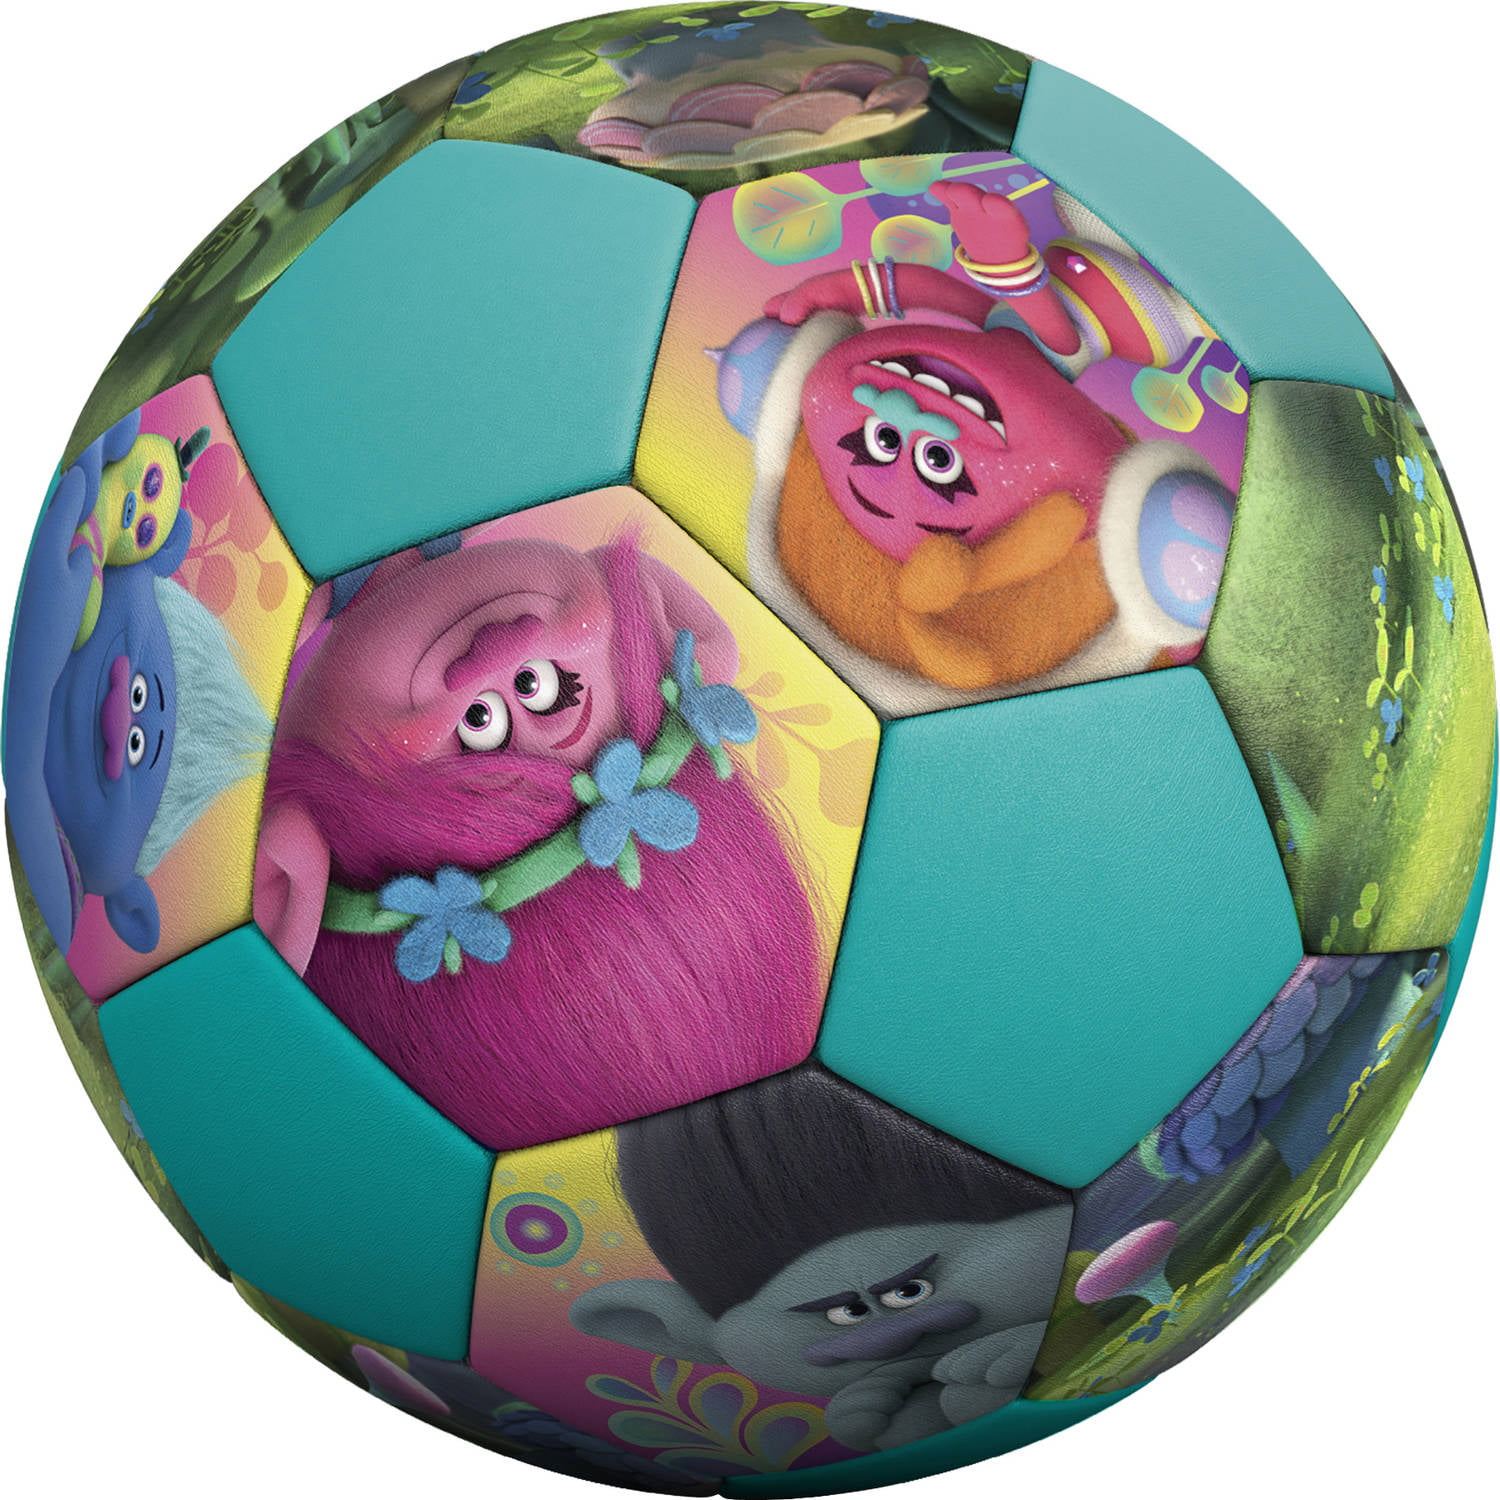 Hedstrom Jr. Soccer Ball Trolls, 1.0 CT by